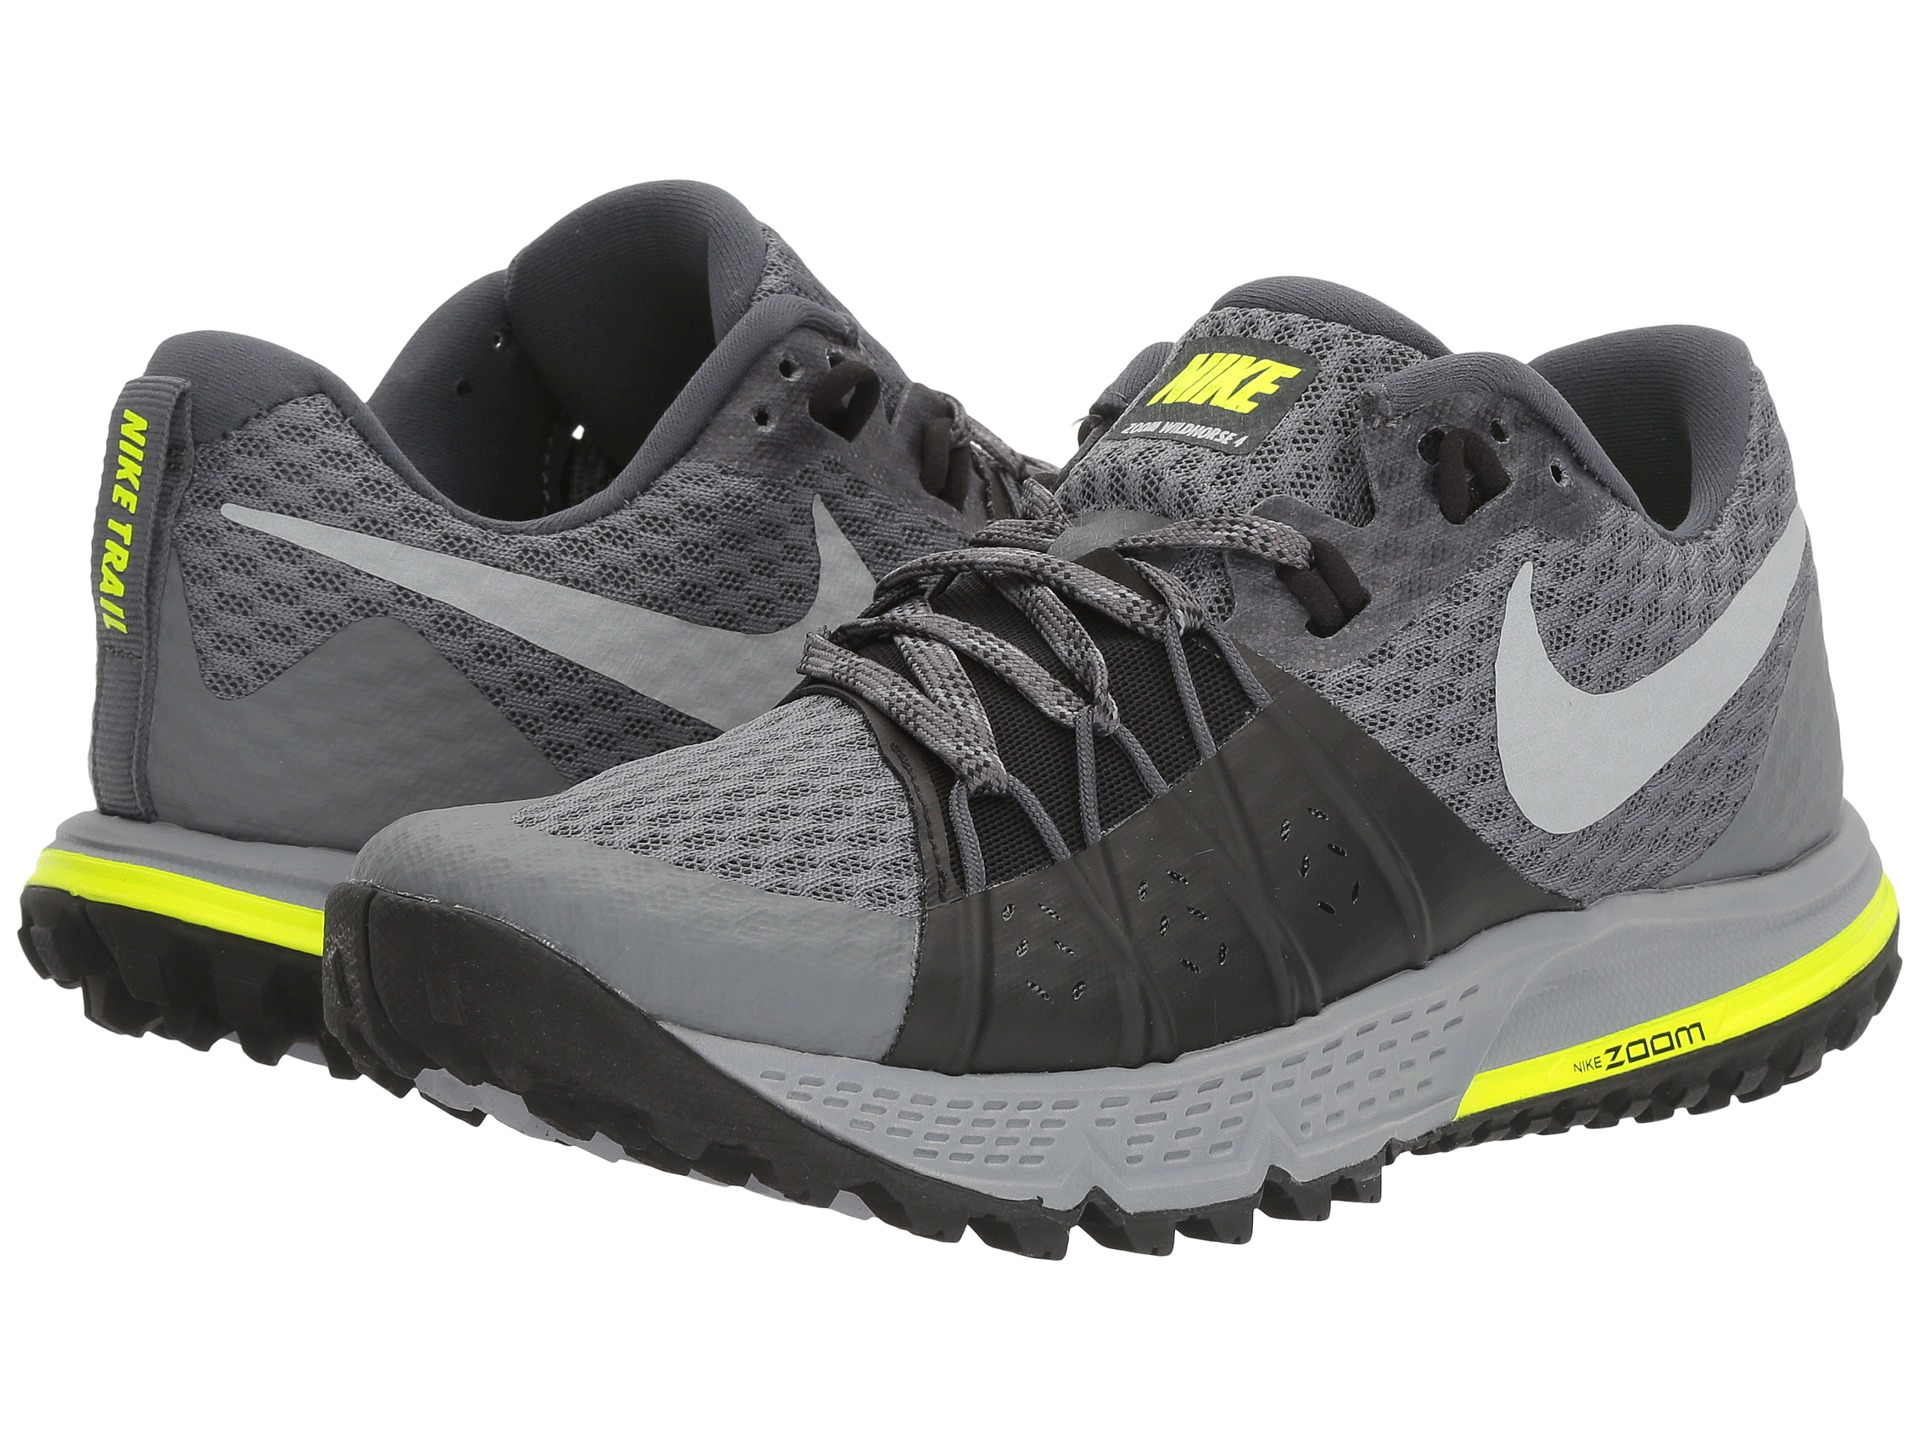 Trail Running Shoes That Help With Supination